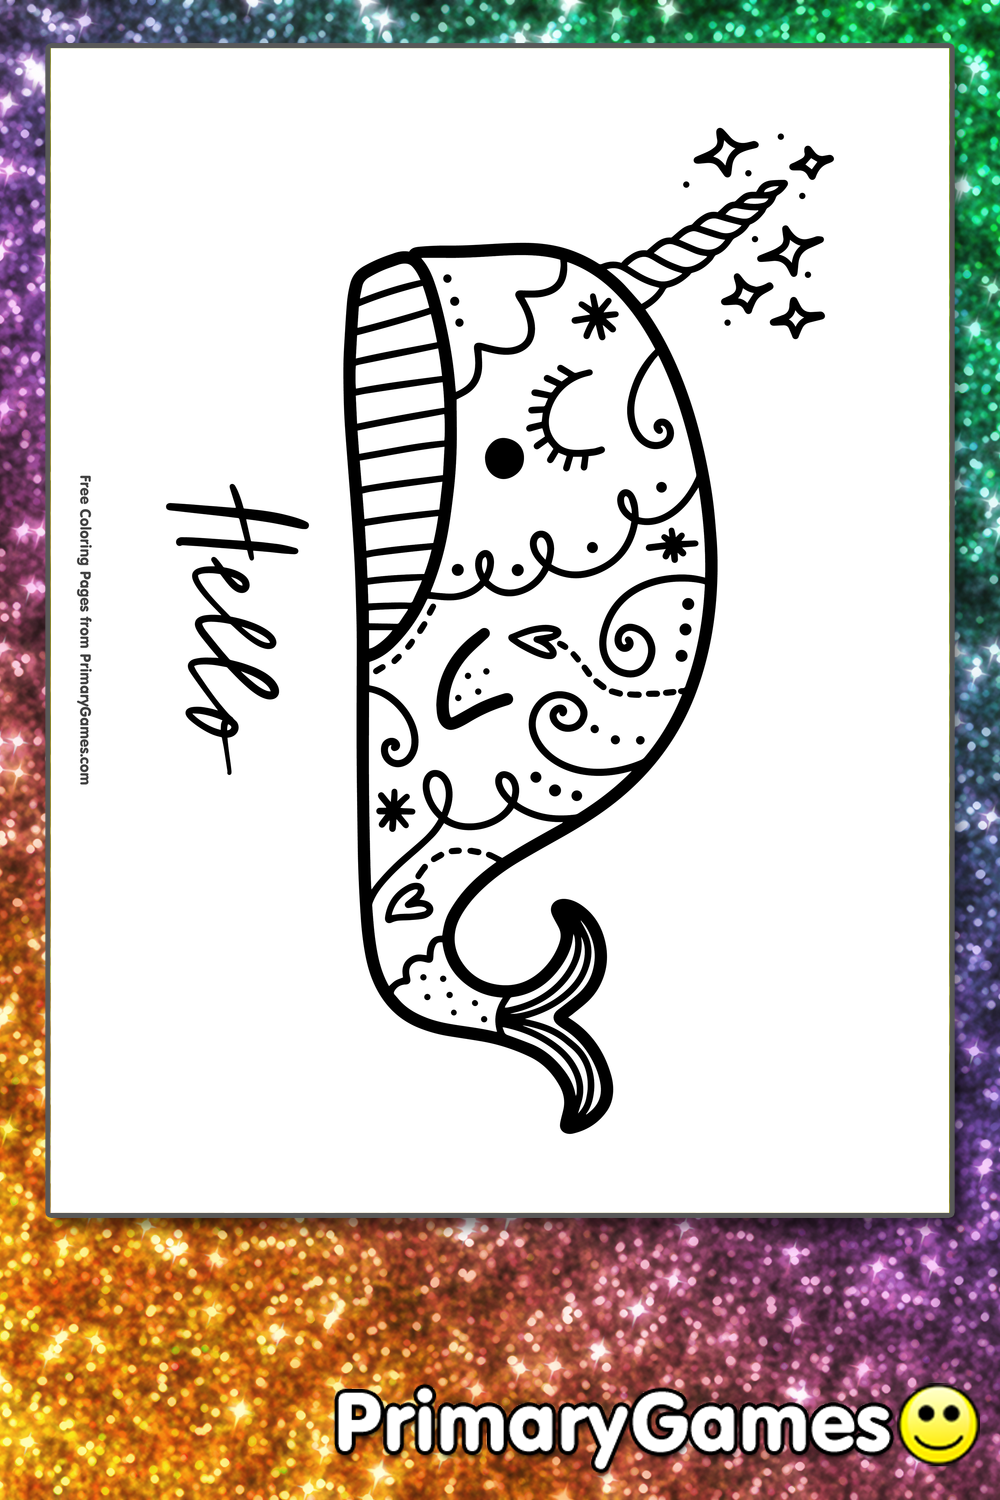 Narwhal Coloring Page Free Printable Pdf From Primarygames